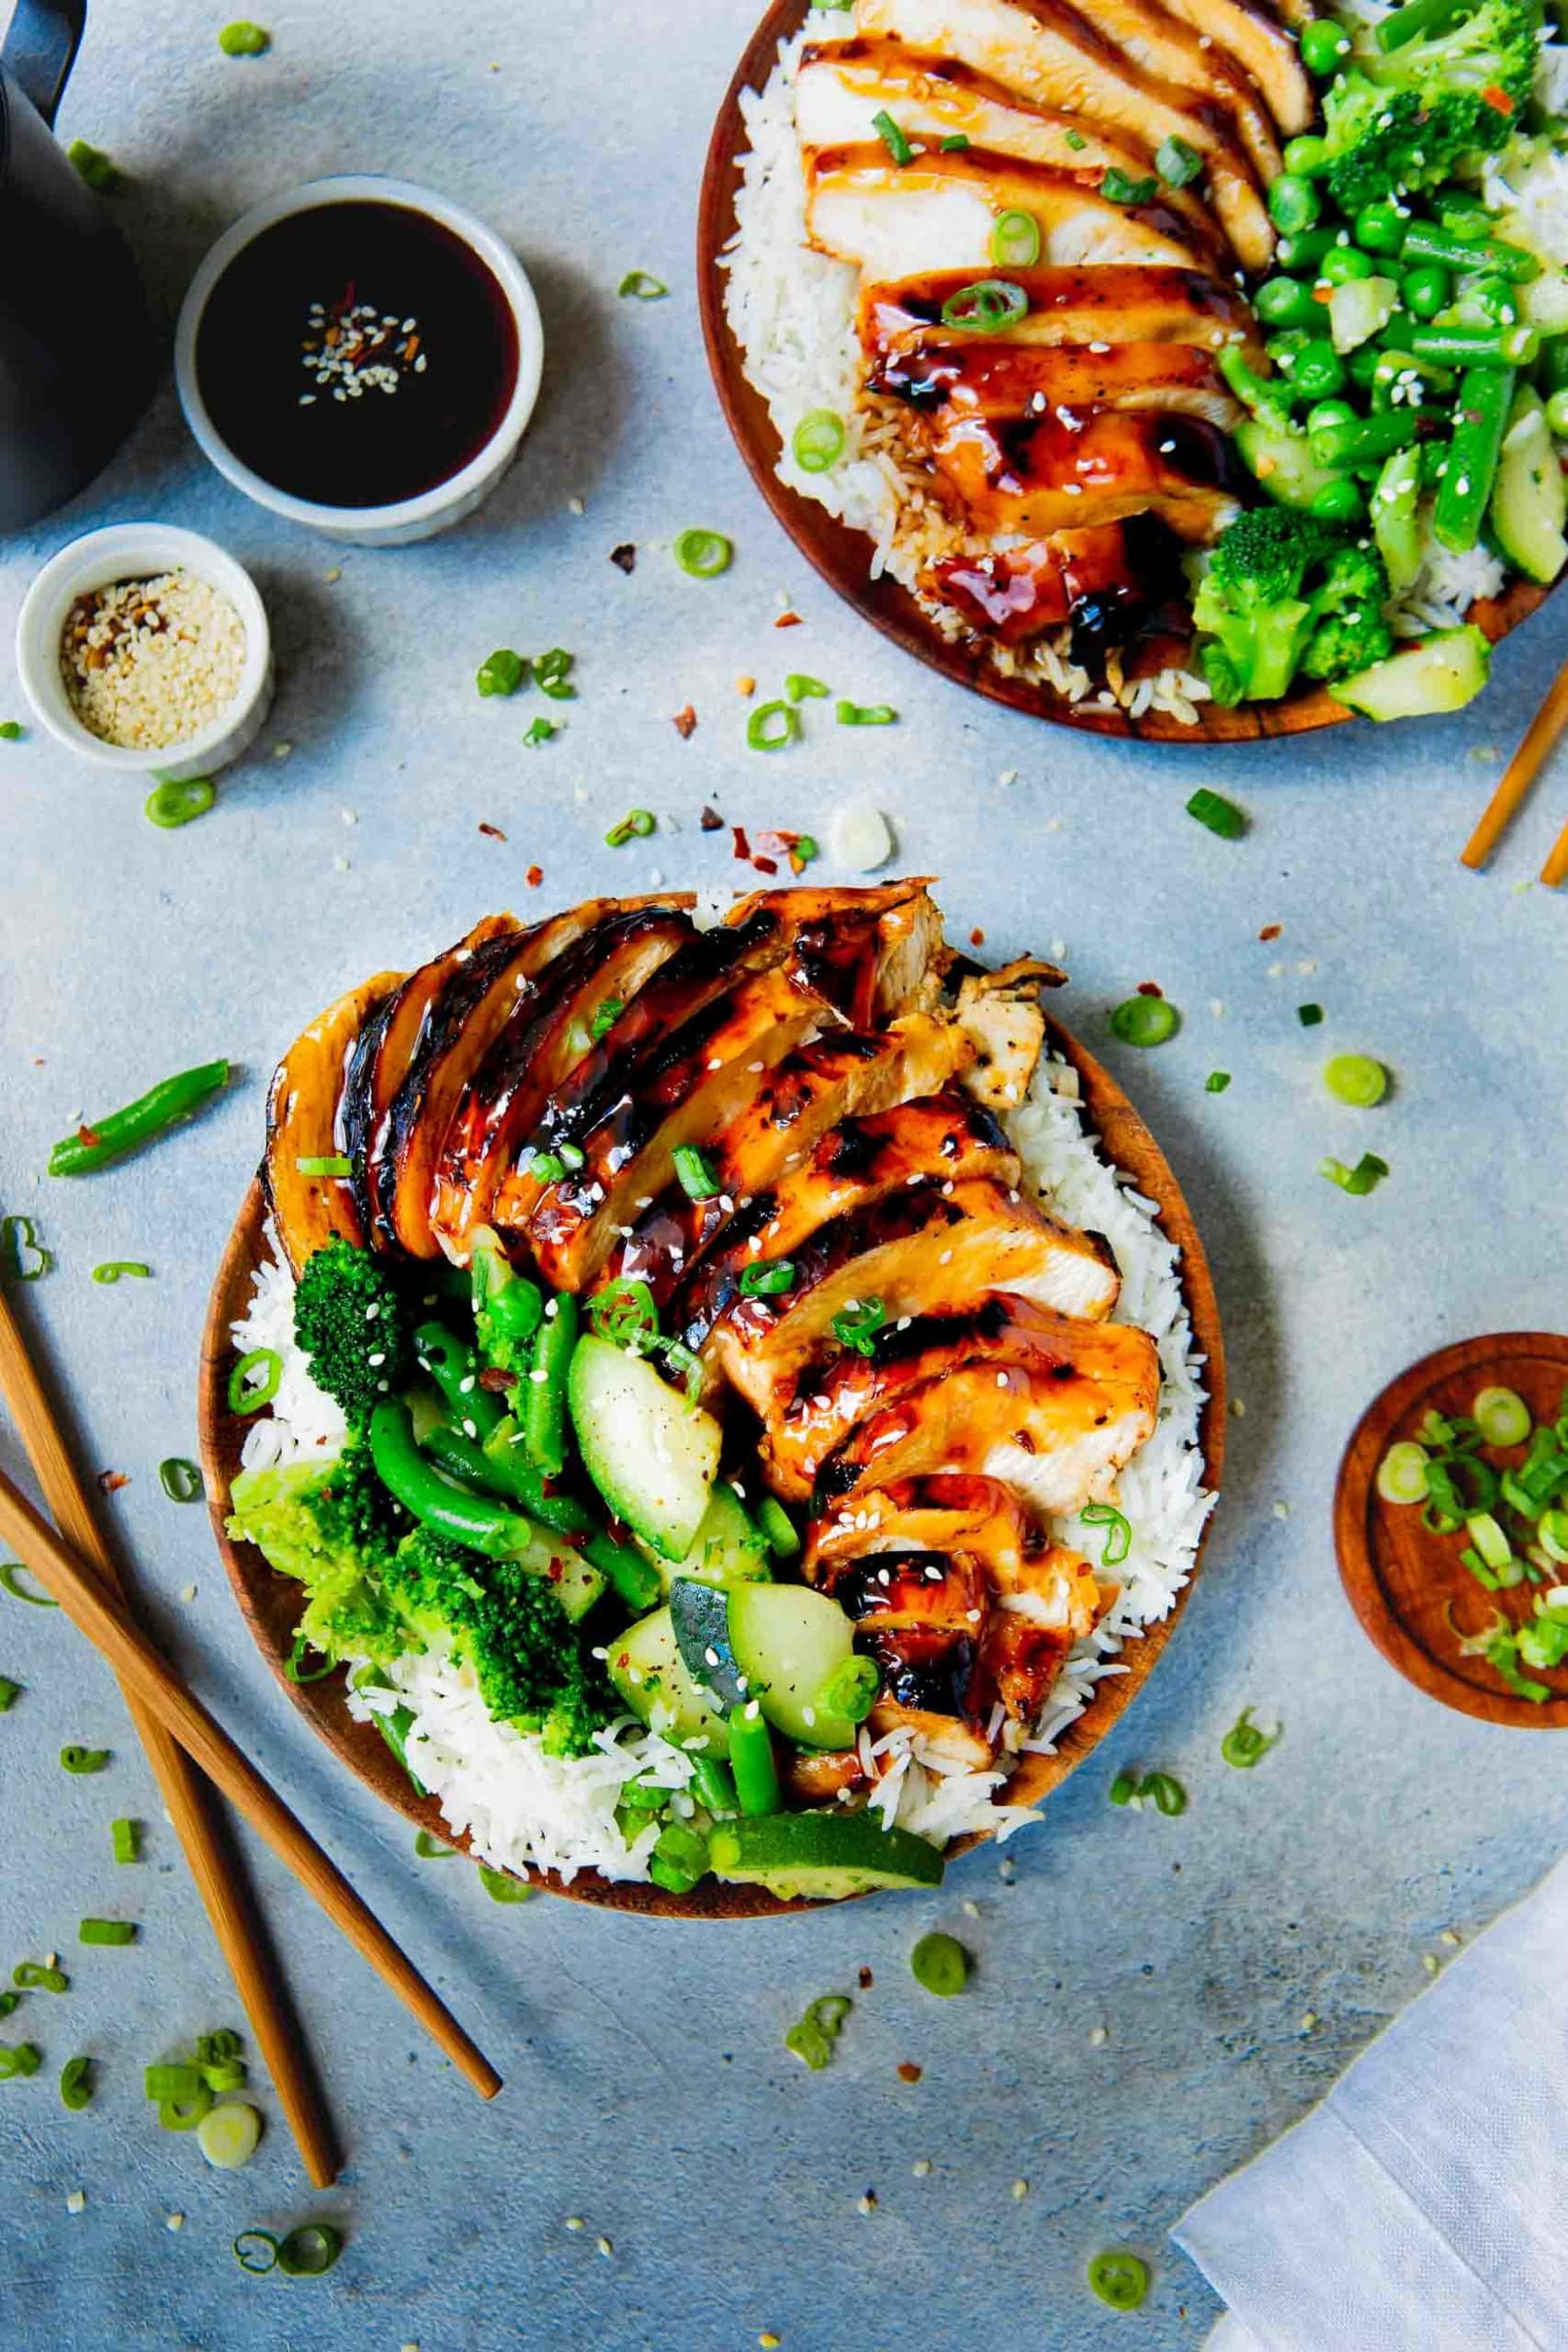 Picture of a plate of white rice topped with tender teriyaki chicken, steamed broccoli, zucchini and green beans with wooden chopsticks next to the plate and another plate of food mostly out of frame